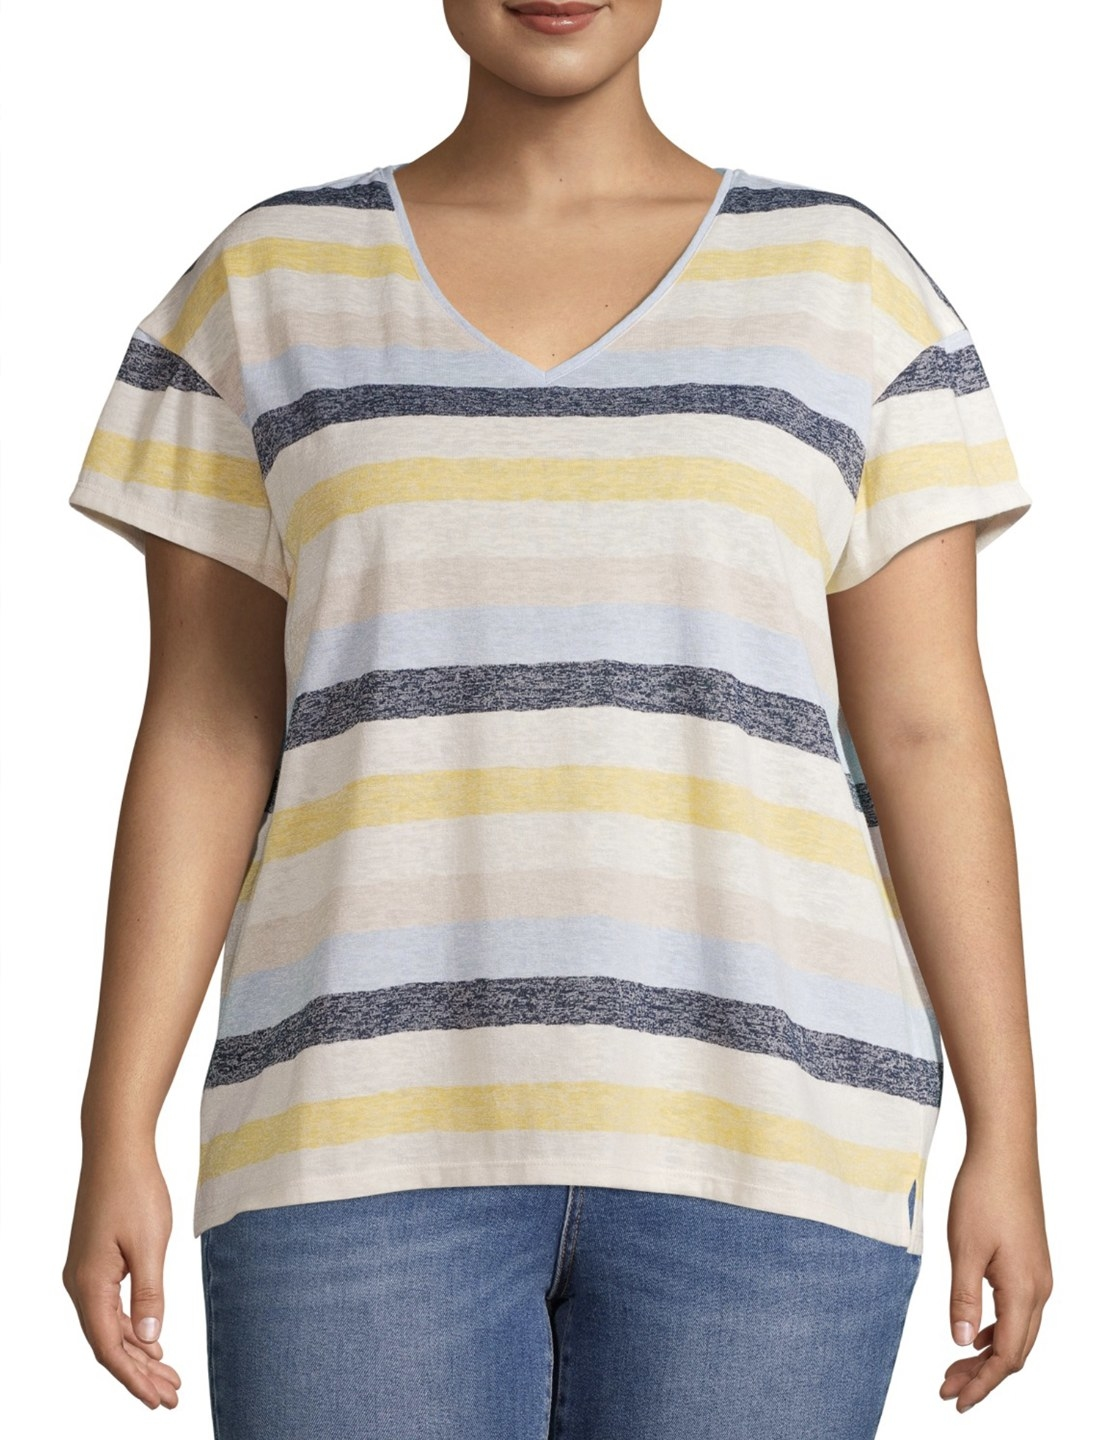 Model in the blue white and yellow striped short sleeve shirt